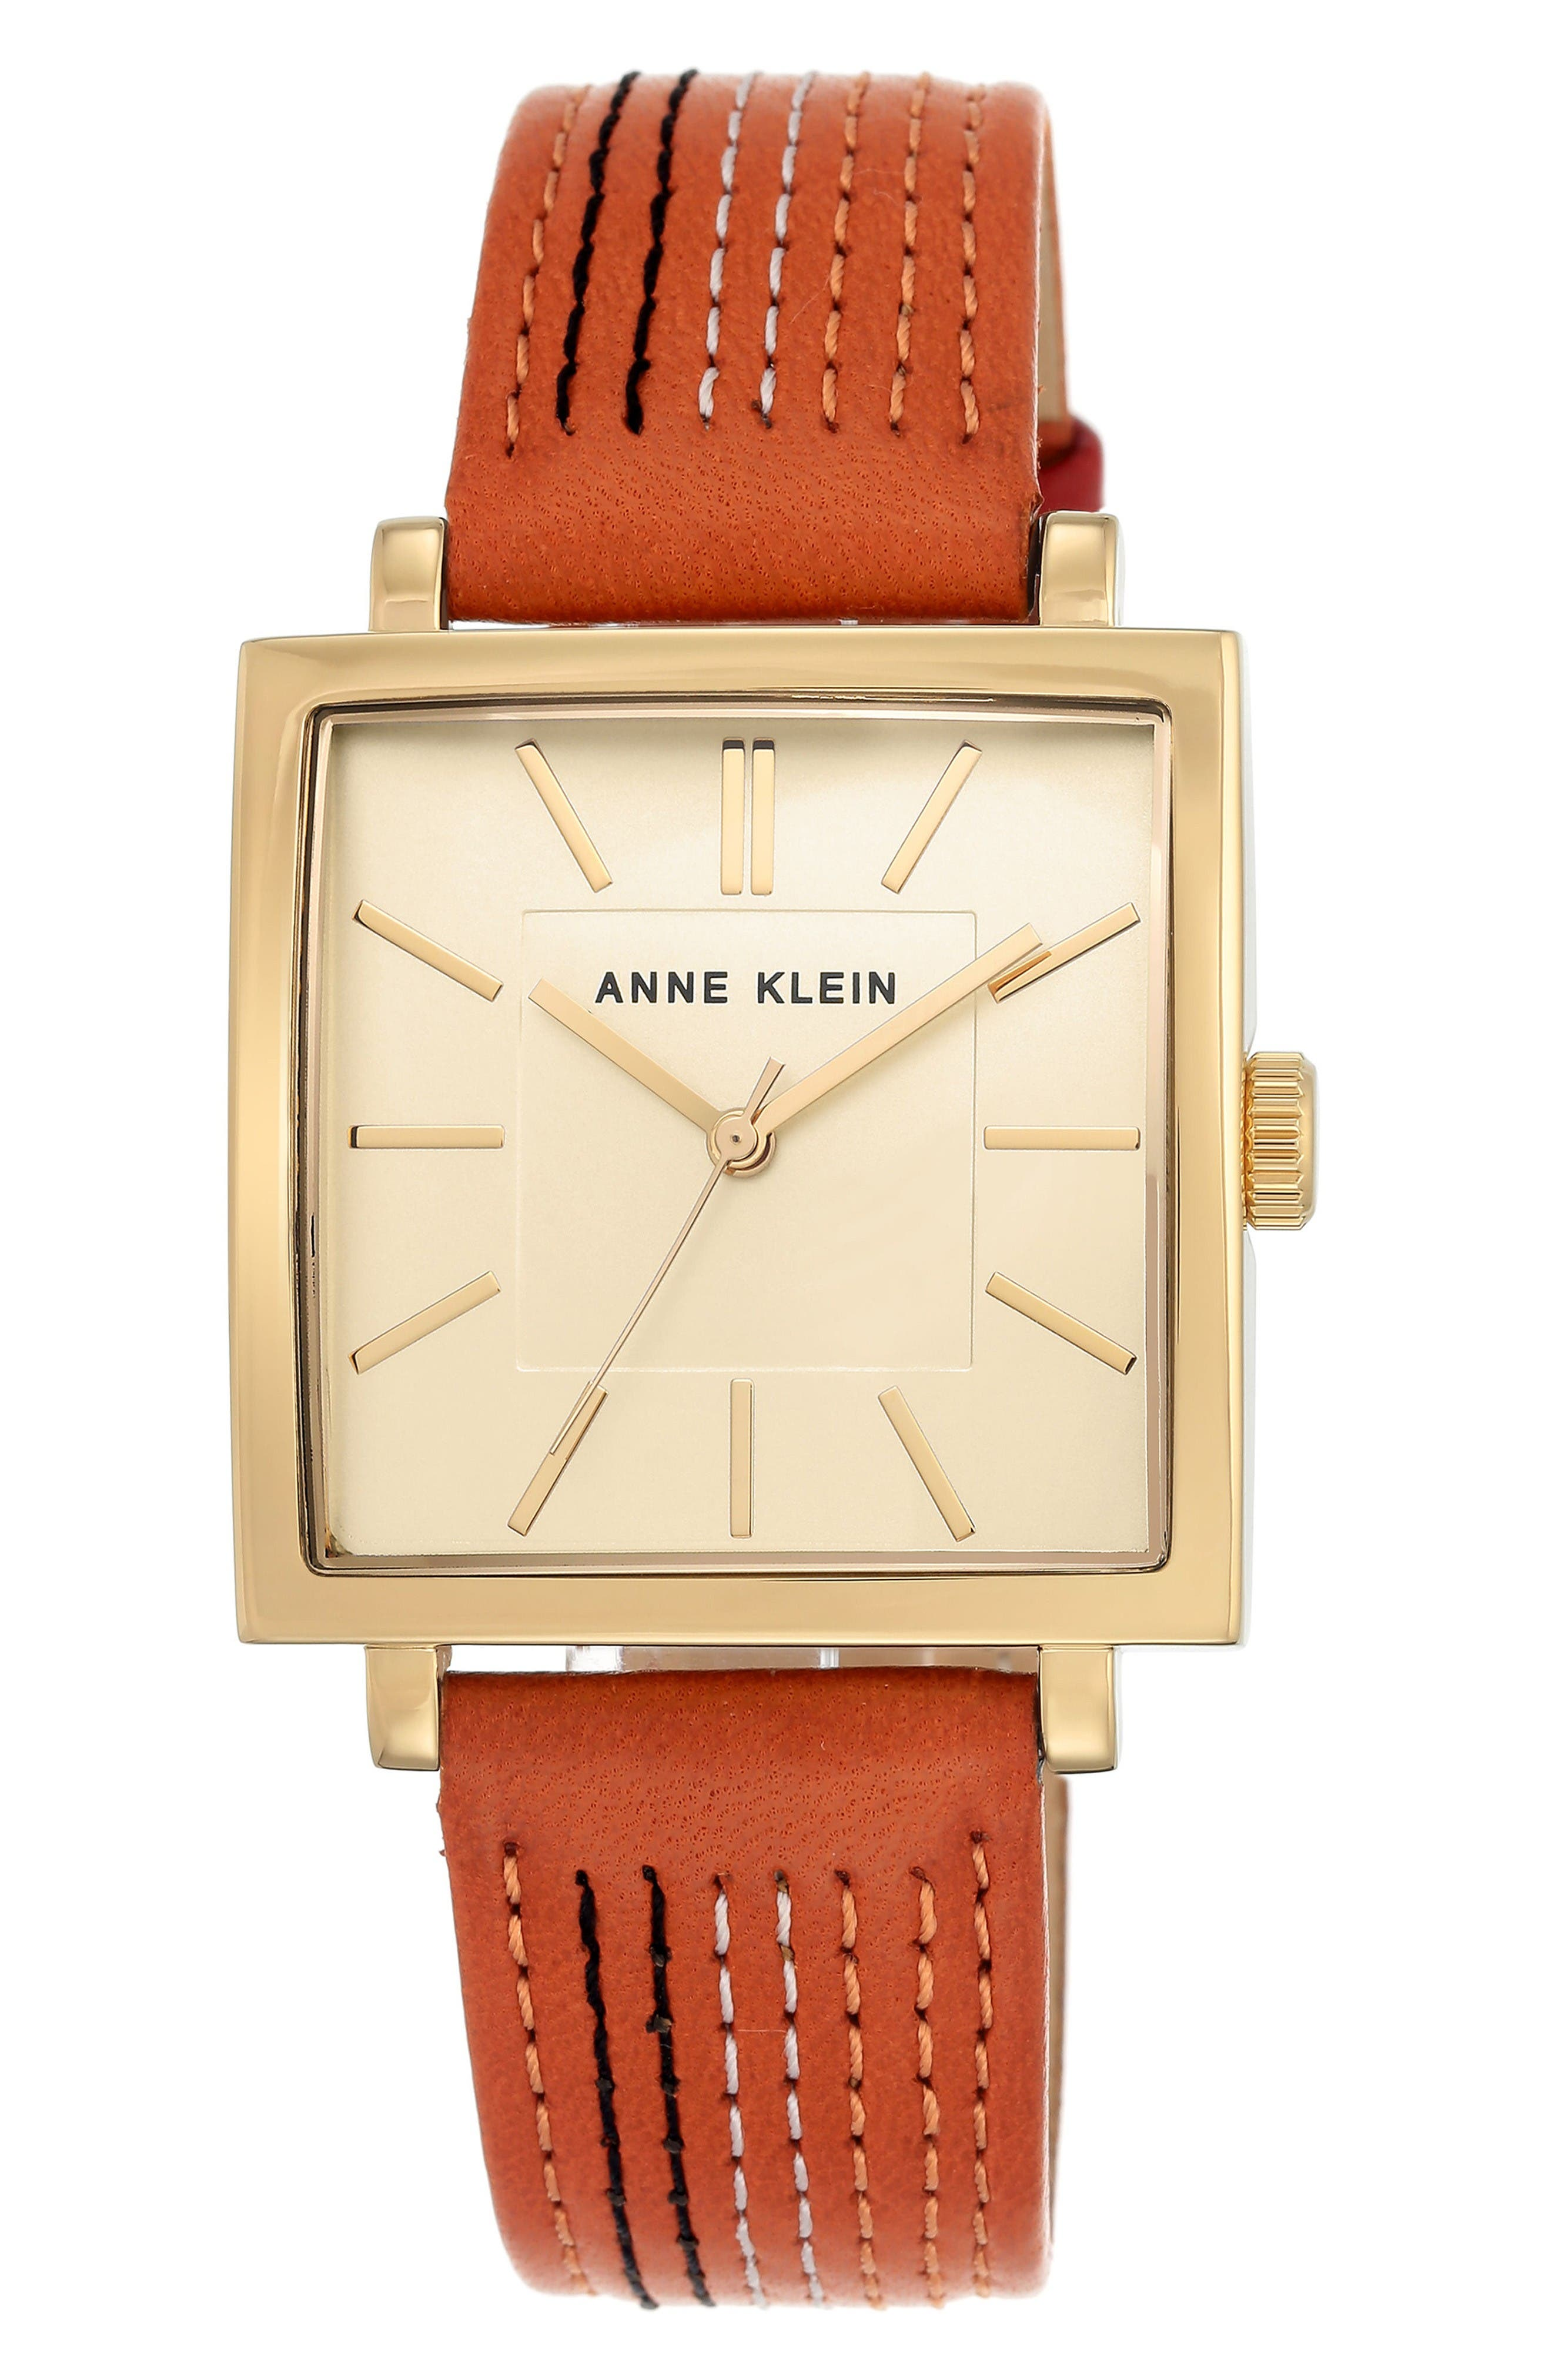 Main Image - Anne Klein Square Leather Strap Watch, 42mm x 34mm